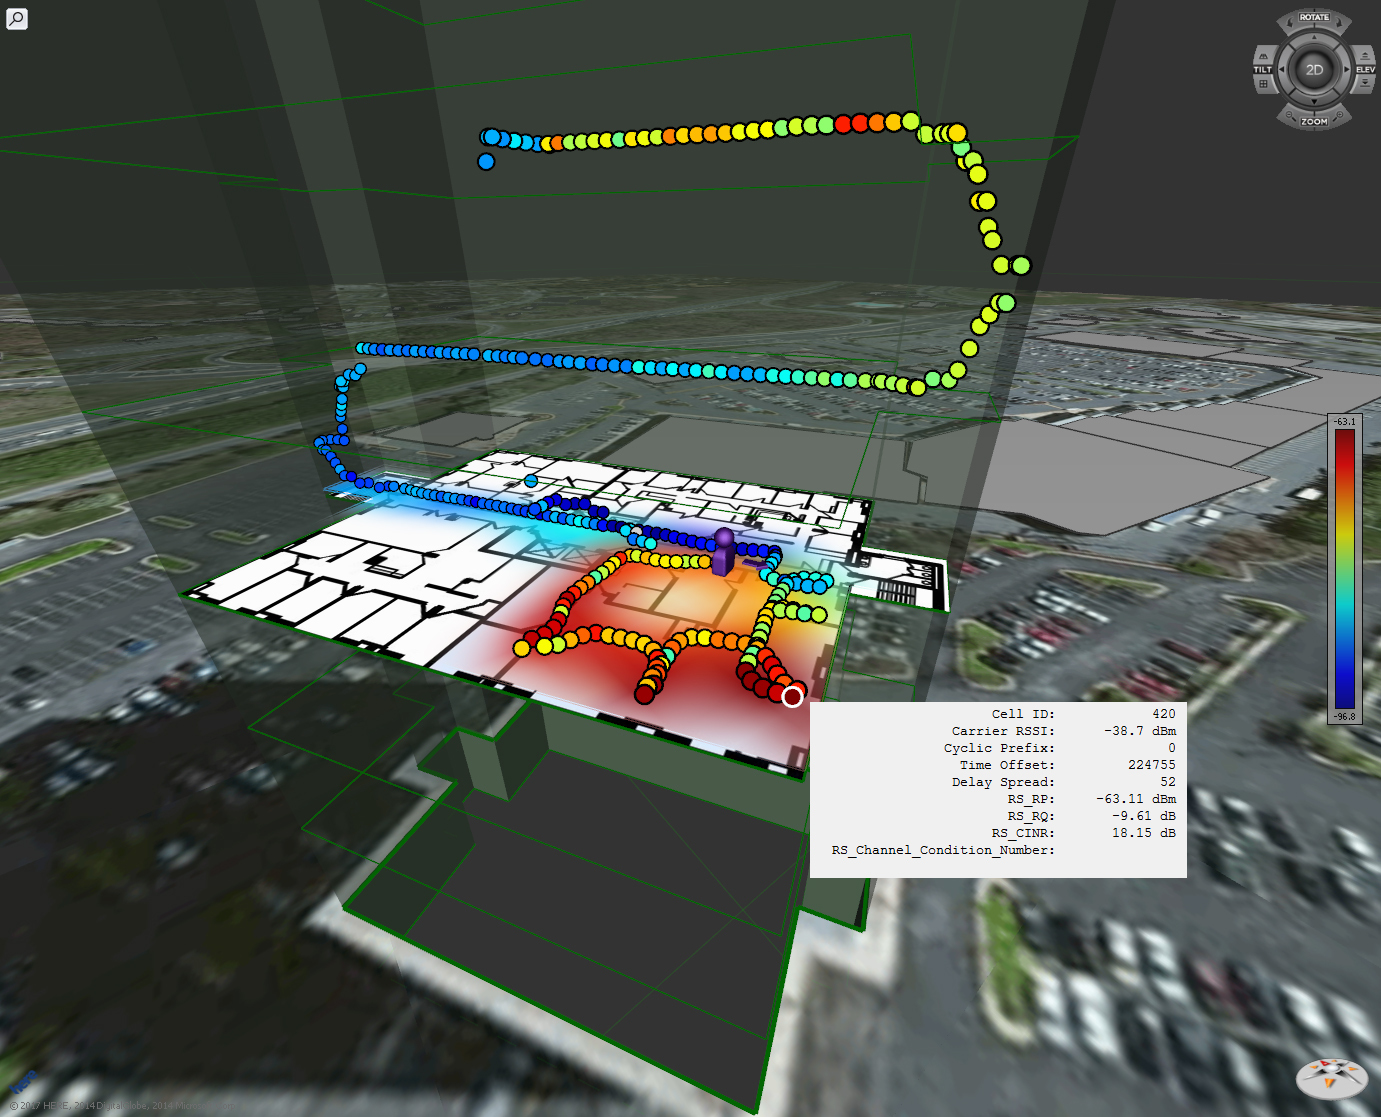 The PCTEL-TRX cellular test and measurement solution generates 3D indoor/outdoor maps using automatic geolocation. The text box reveals key data collected at the selected location. (Graphic: Business Wire)